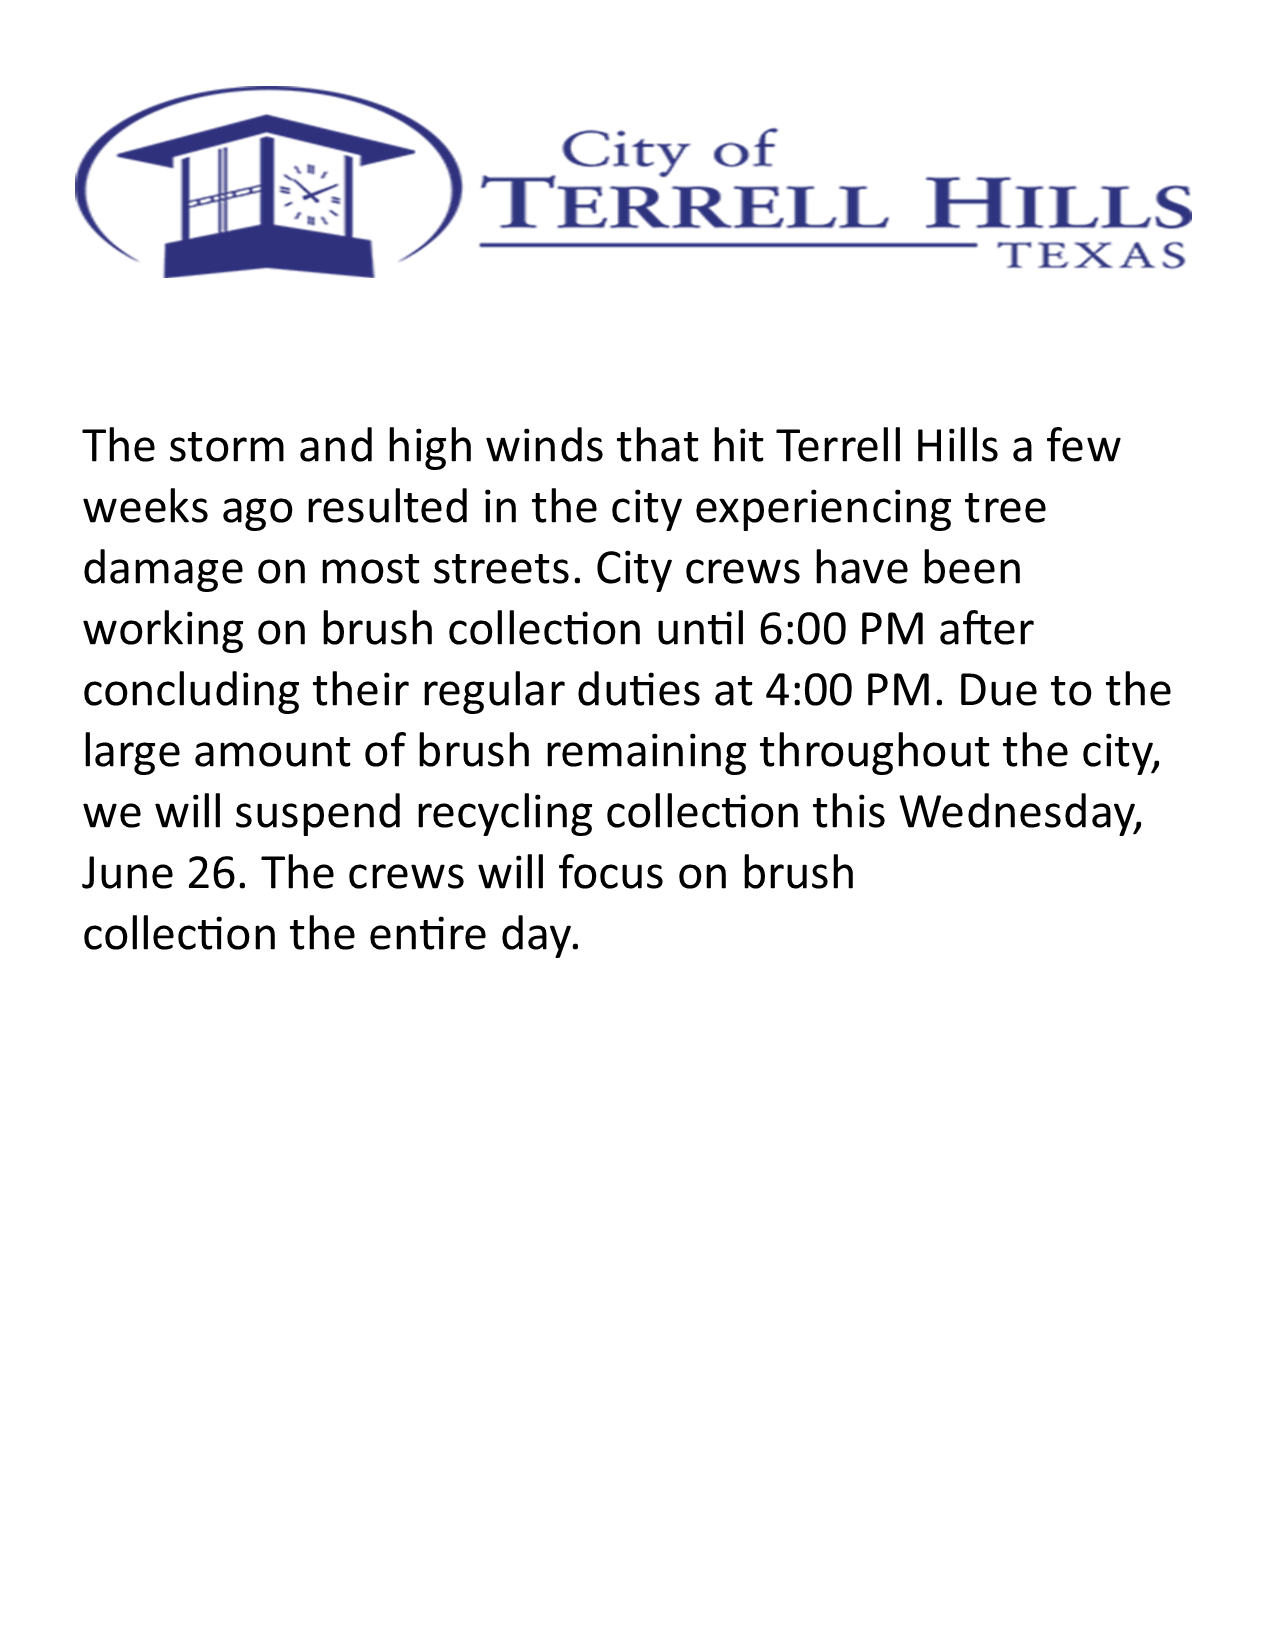 Recycling Canceled 06262019